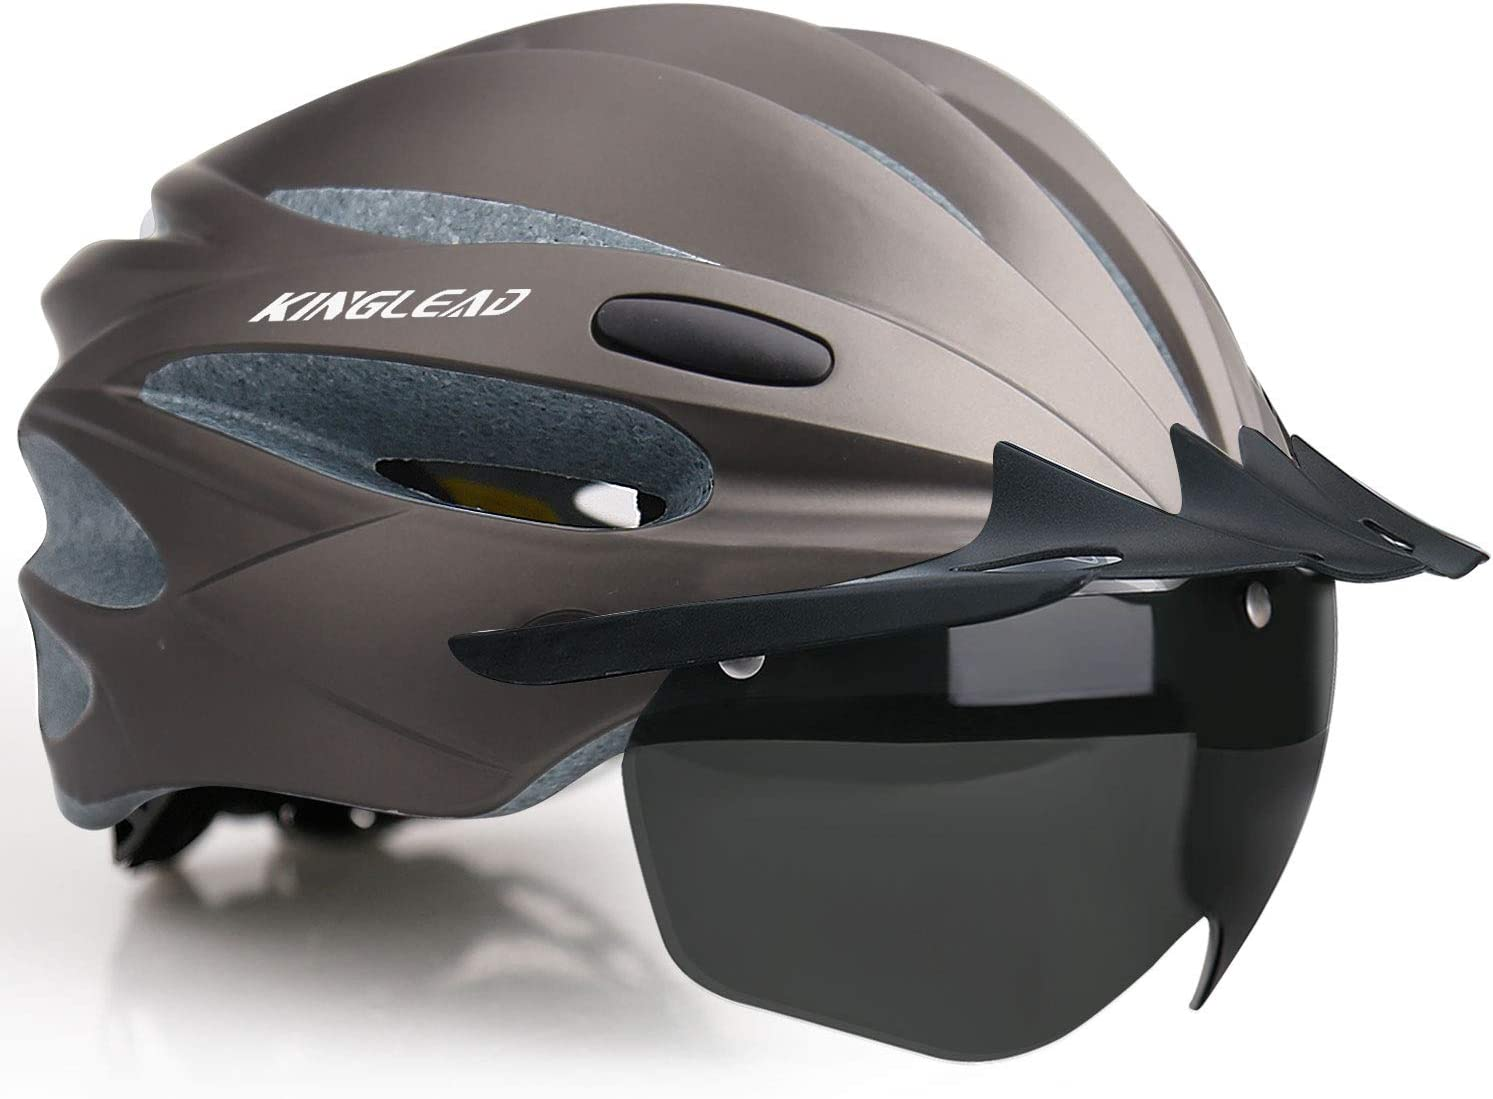 KINGLEAD Bike Helmet, Bicycle Helmet Cpsc&Ce Certified with USB Rechargeable Light Detachable Magnetic Goggles Removable Sun Visor Portable Bag for Adult Men Women Mountain Road Cycling(Kl-059)